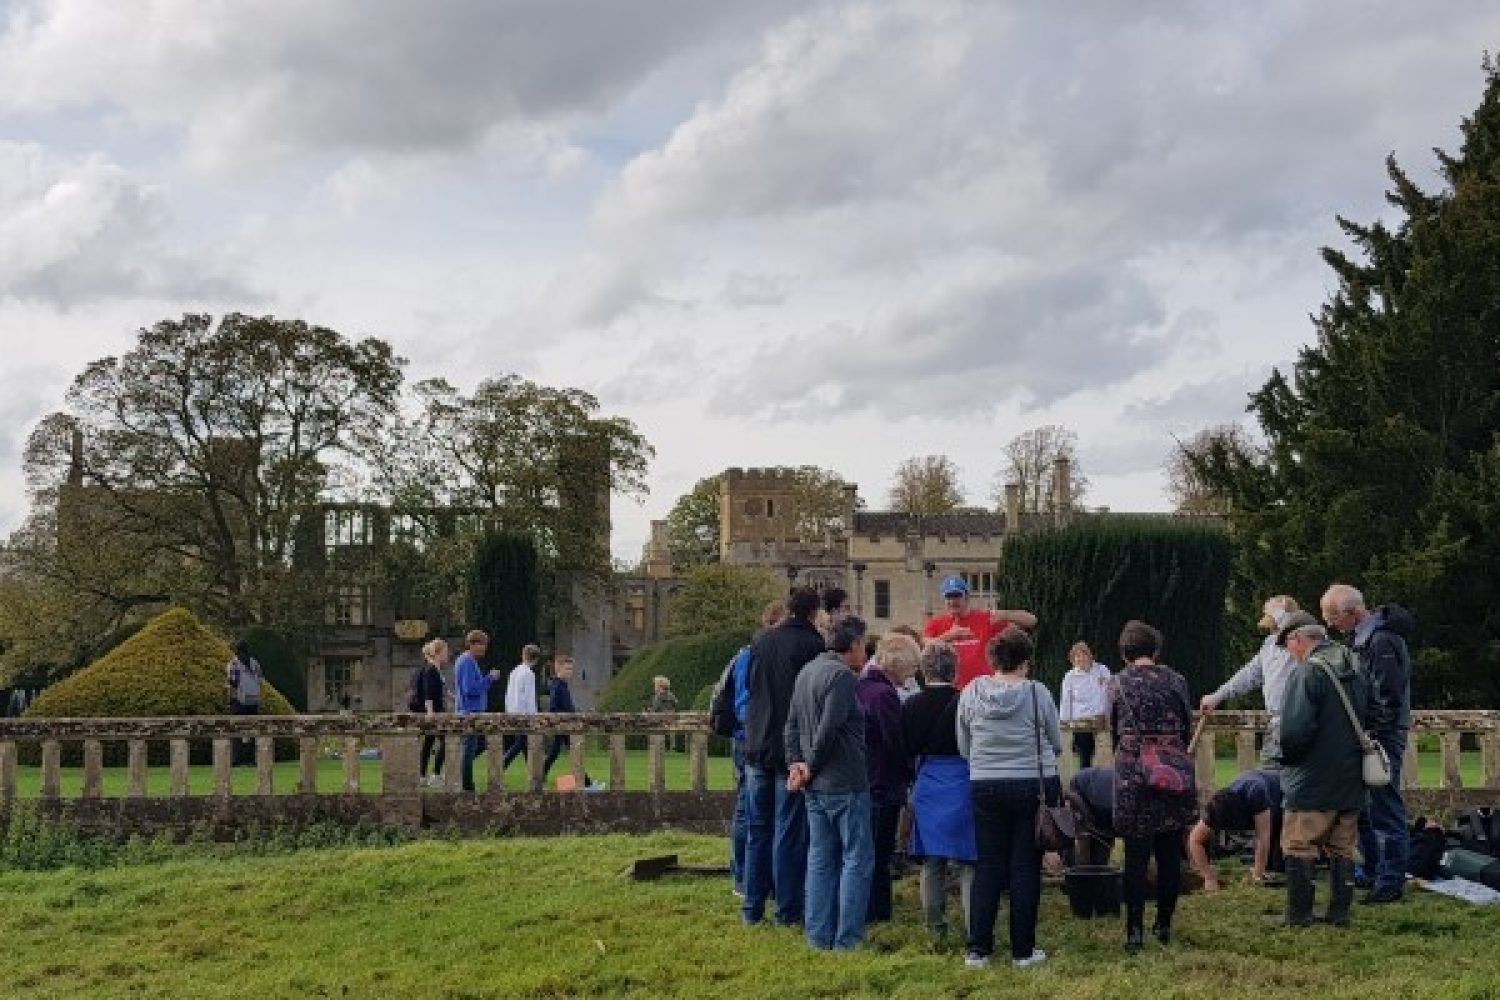 A group of visitors surround one of the dig sites